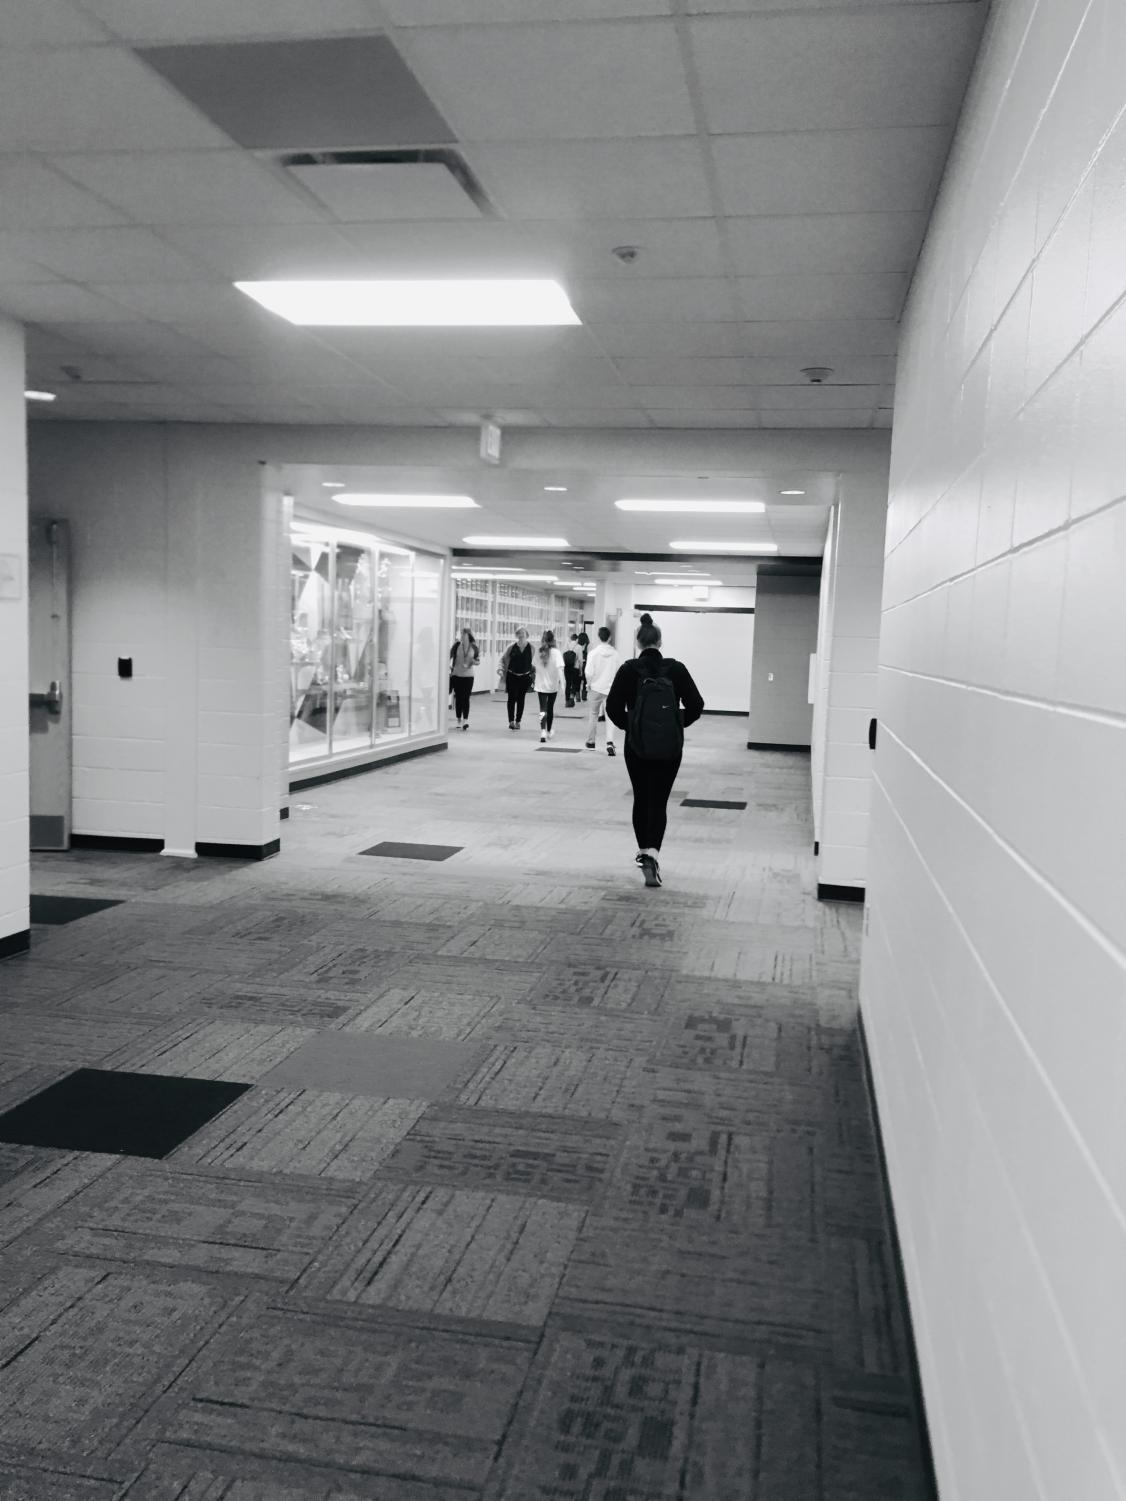 Students and teachers walk between the old building and the new edition which was opened this year.